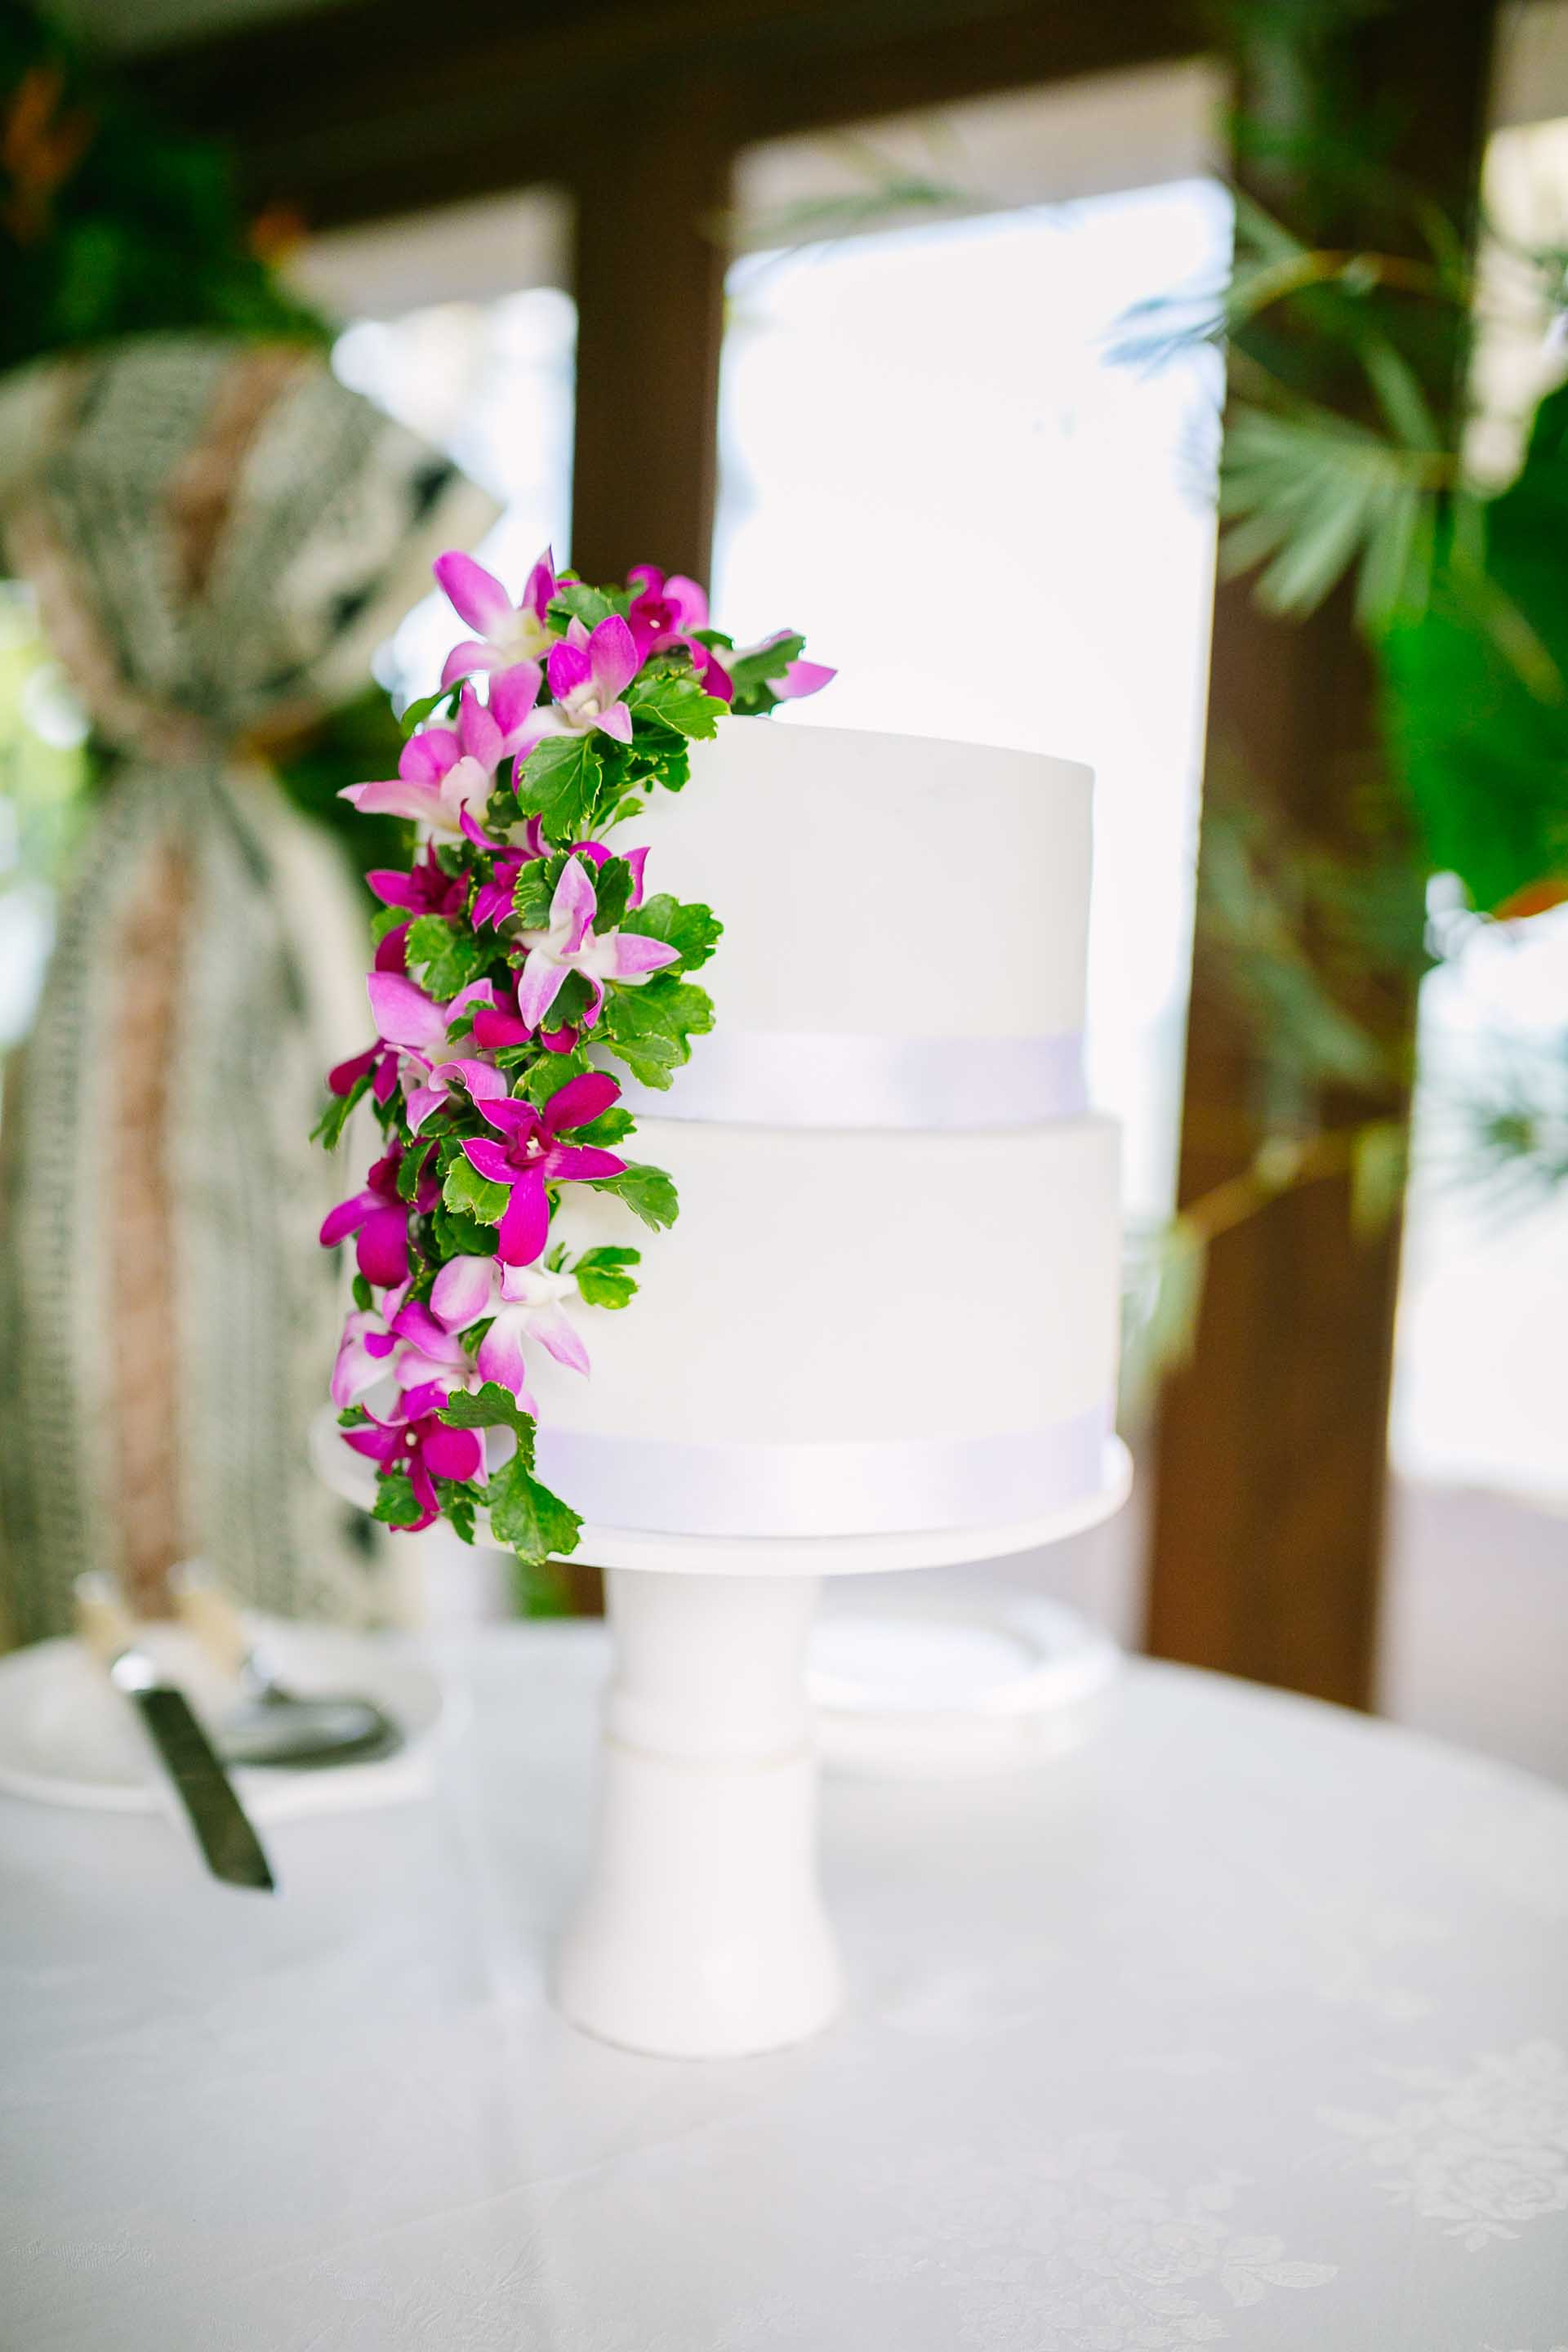 the wedding cake ready at the ceremony for just after the vows are exchanged